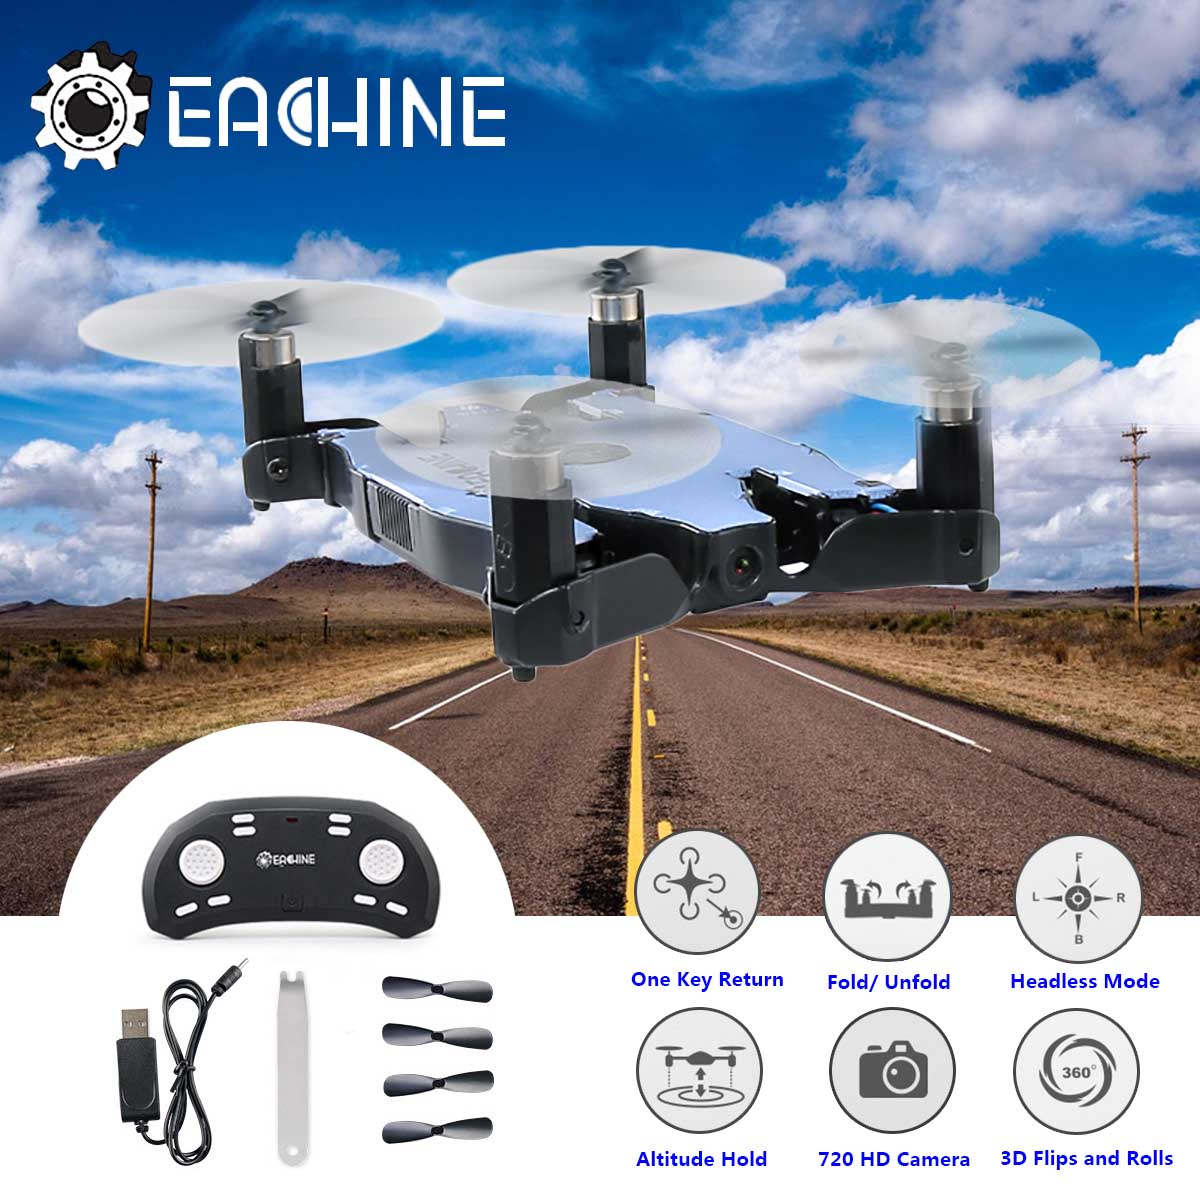 Hot Sale Eachine E57 WiFi FPV With 720P HD Camera Auto Foldable Arm Altitude Hold RC Quadcopter Selfie Drone VS JJRC H49 jjrc h49 sol ultrathin wifi fpv drone beauty mode 2mp camera auto foldable arm altitude hold rc quadcopter vs e50 e56 e57